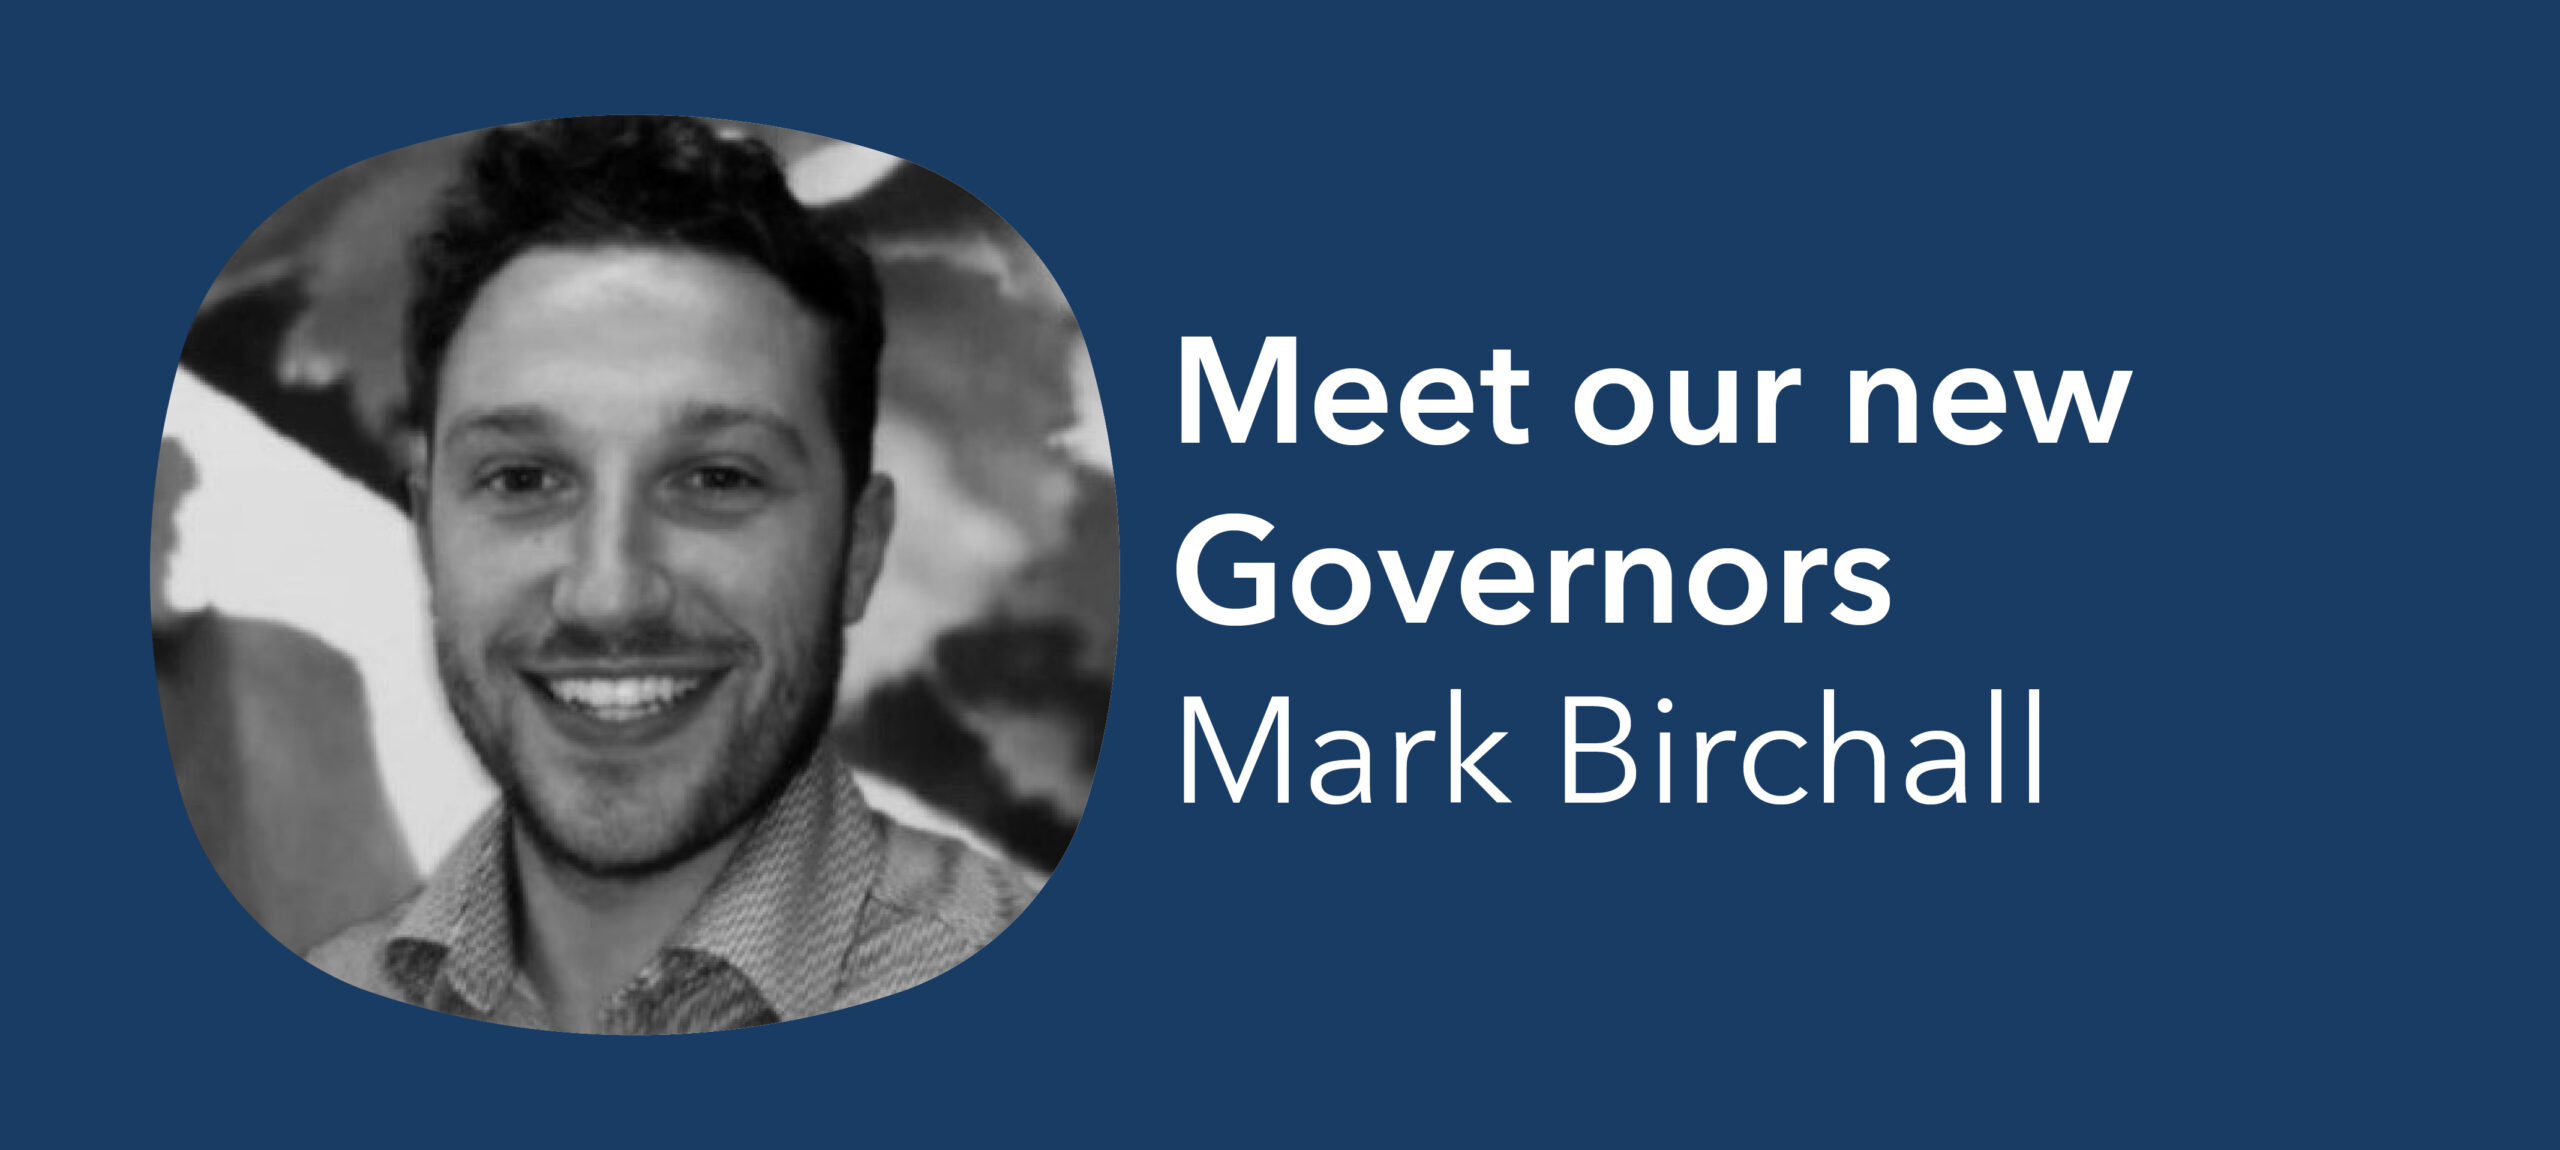 Meet our Governors- Mark Birchall